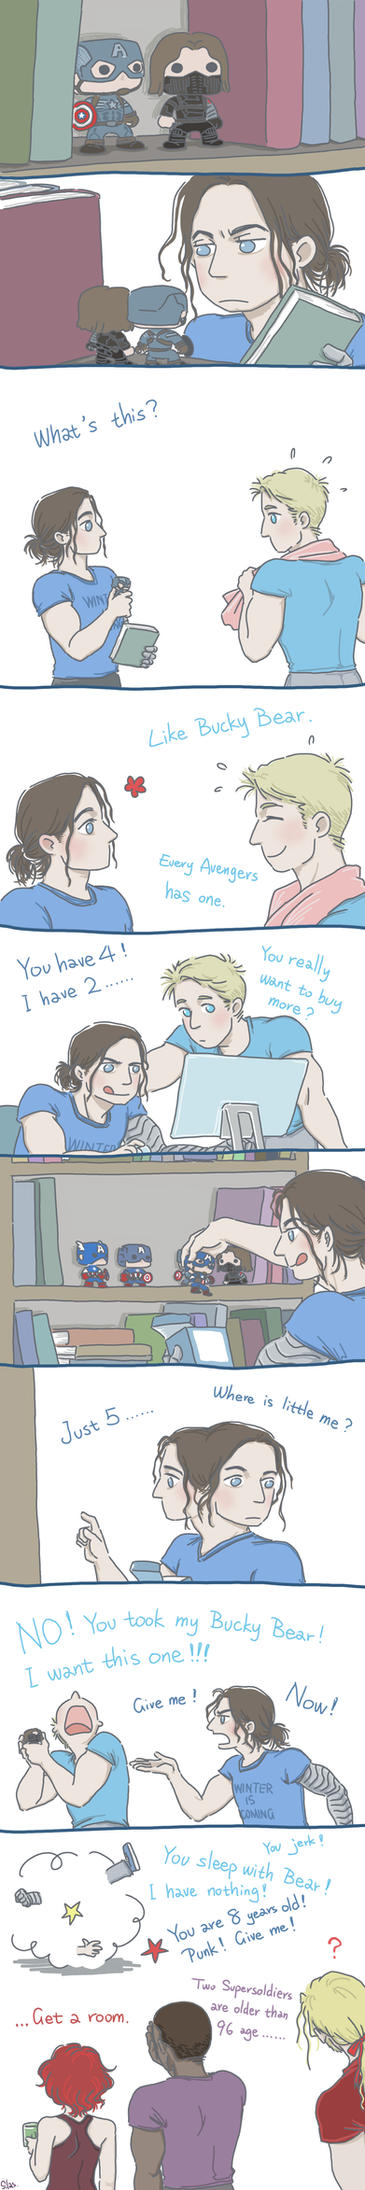 Steve and Bucky: Funko by SilasSamle